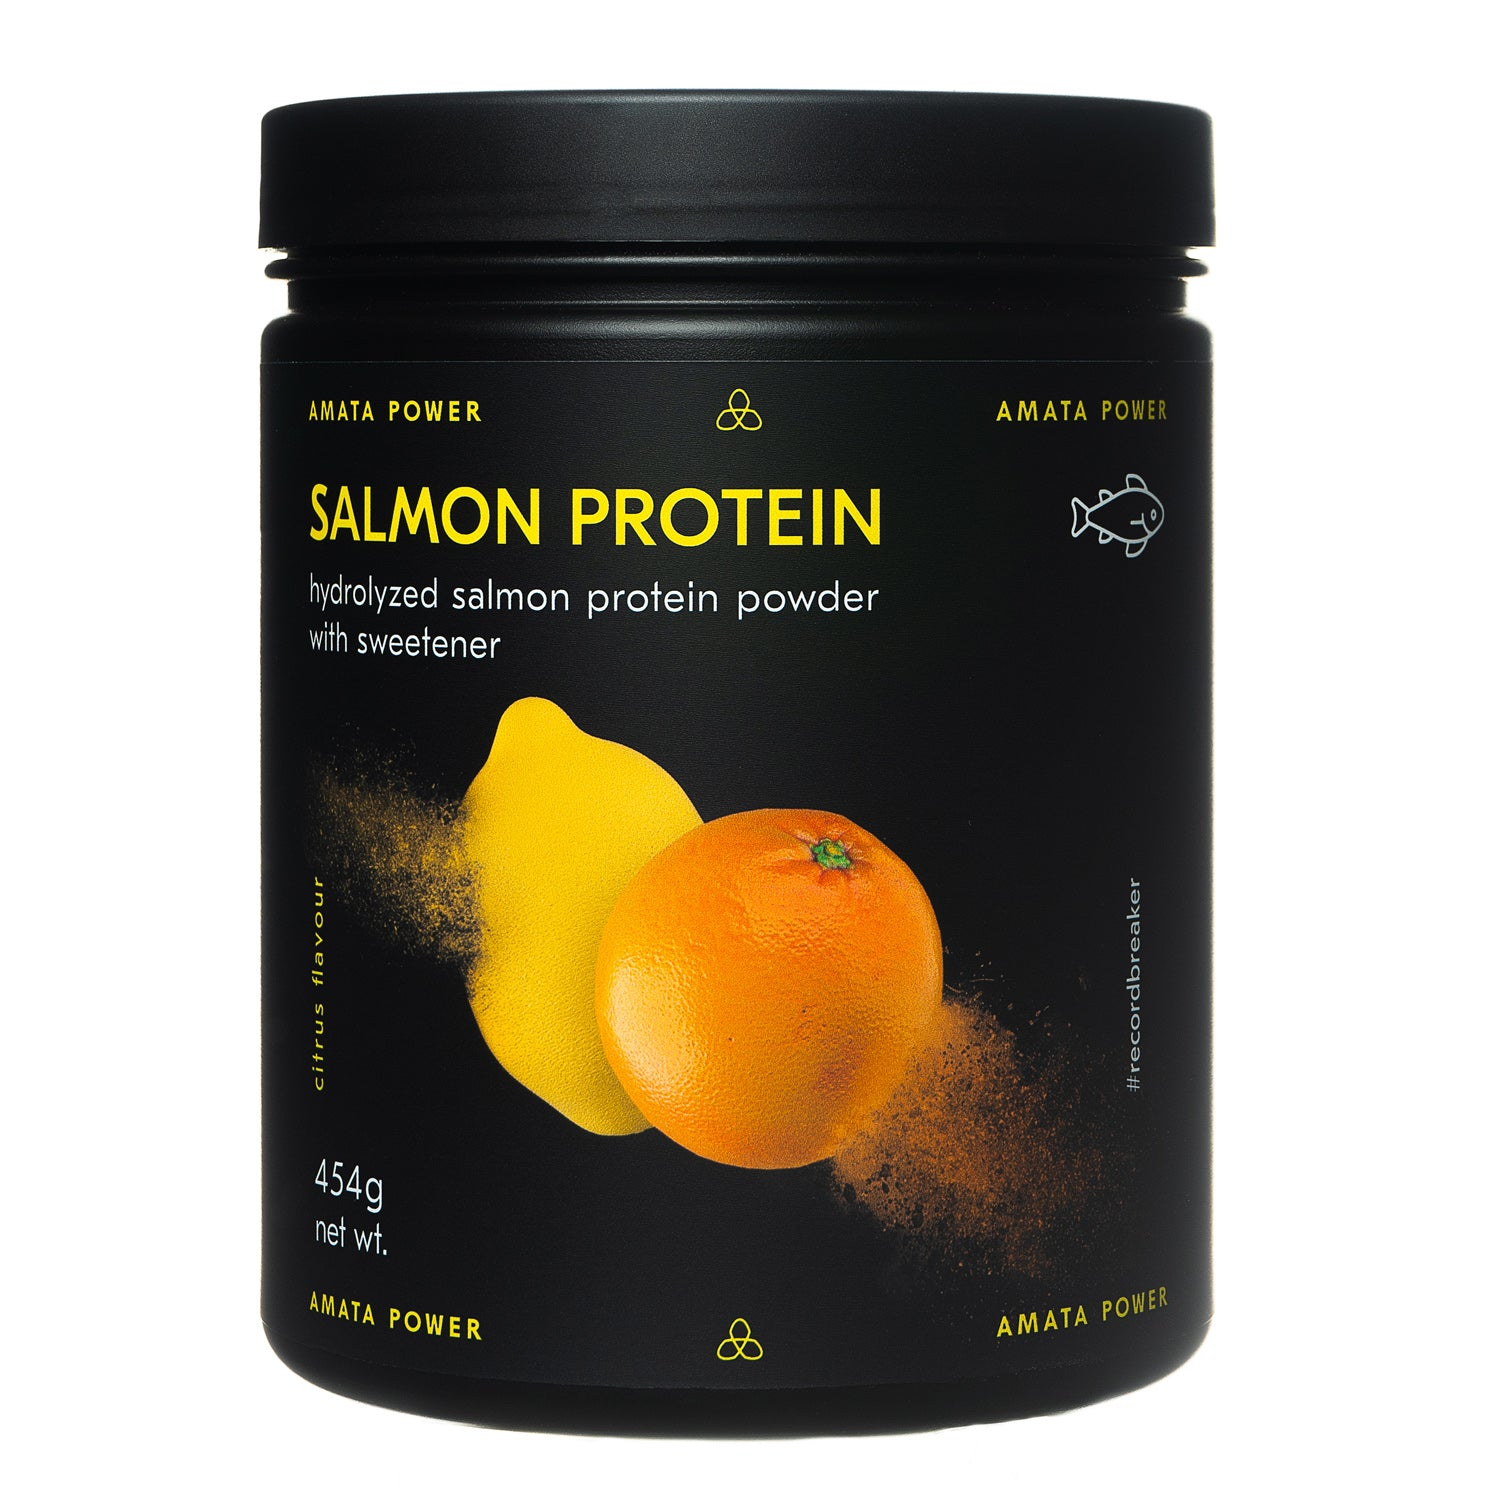 Salmon Protein Powder - 454g - Citrus